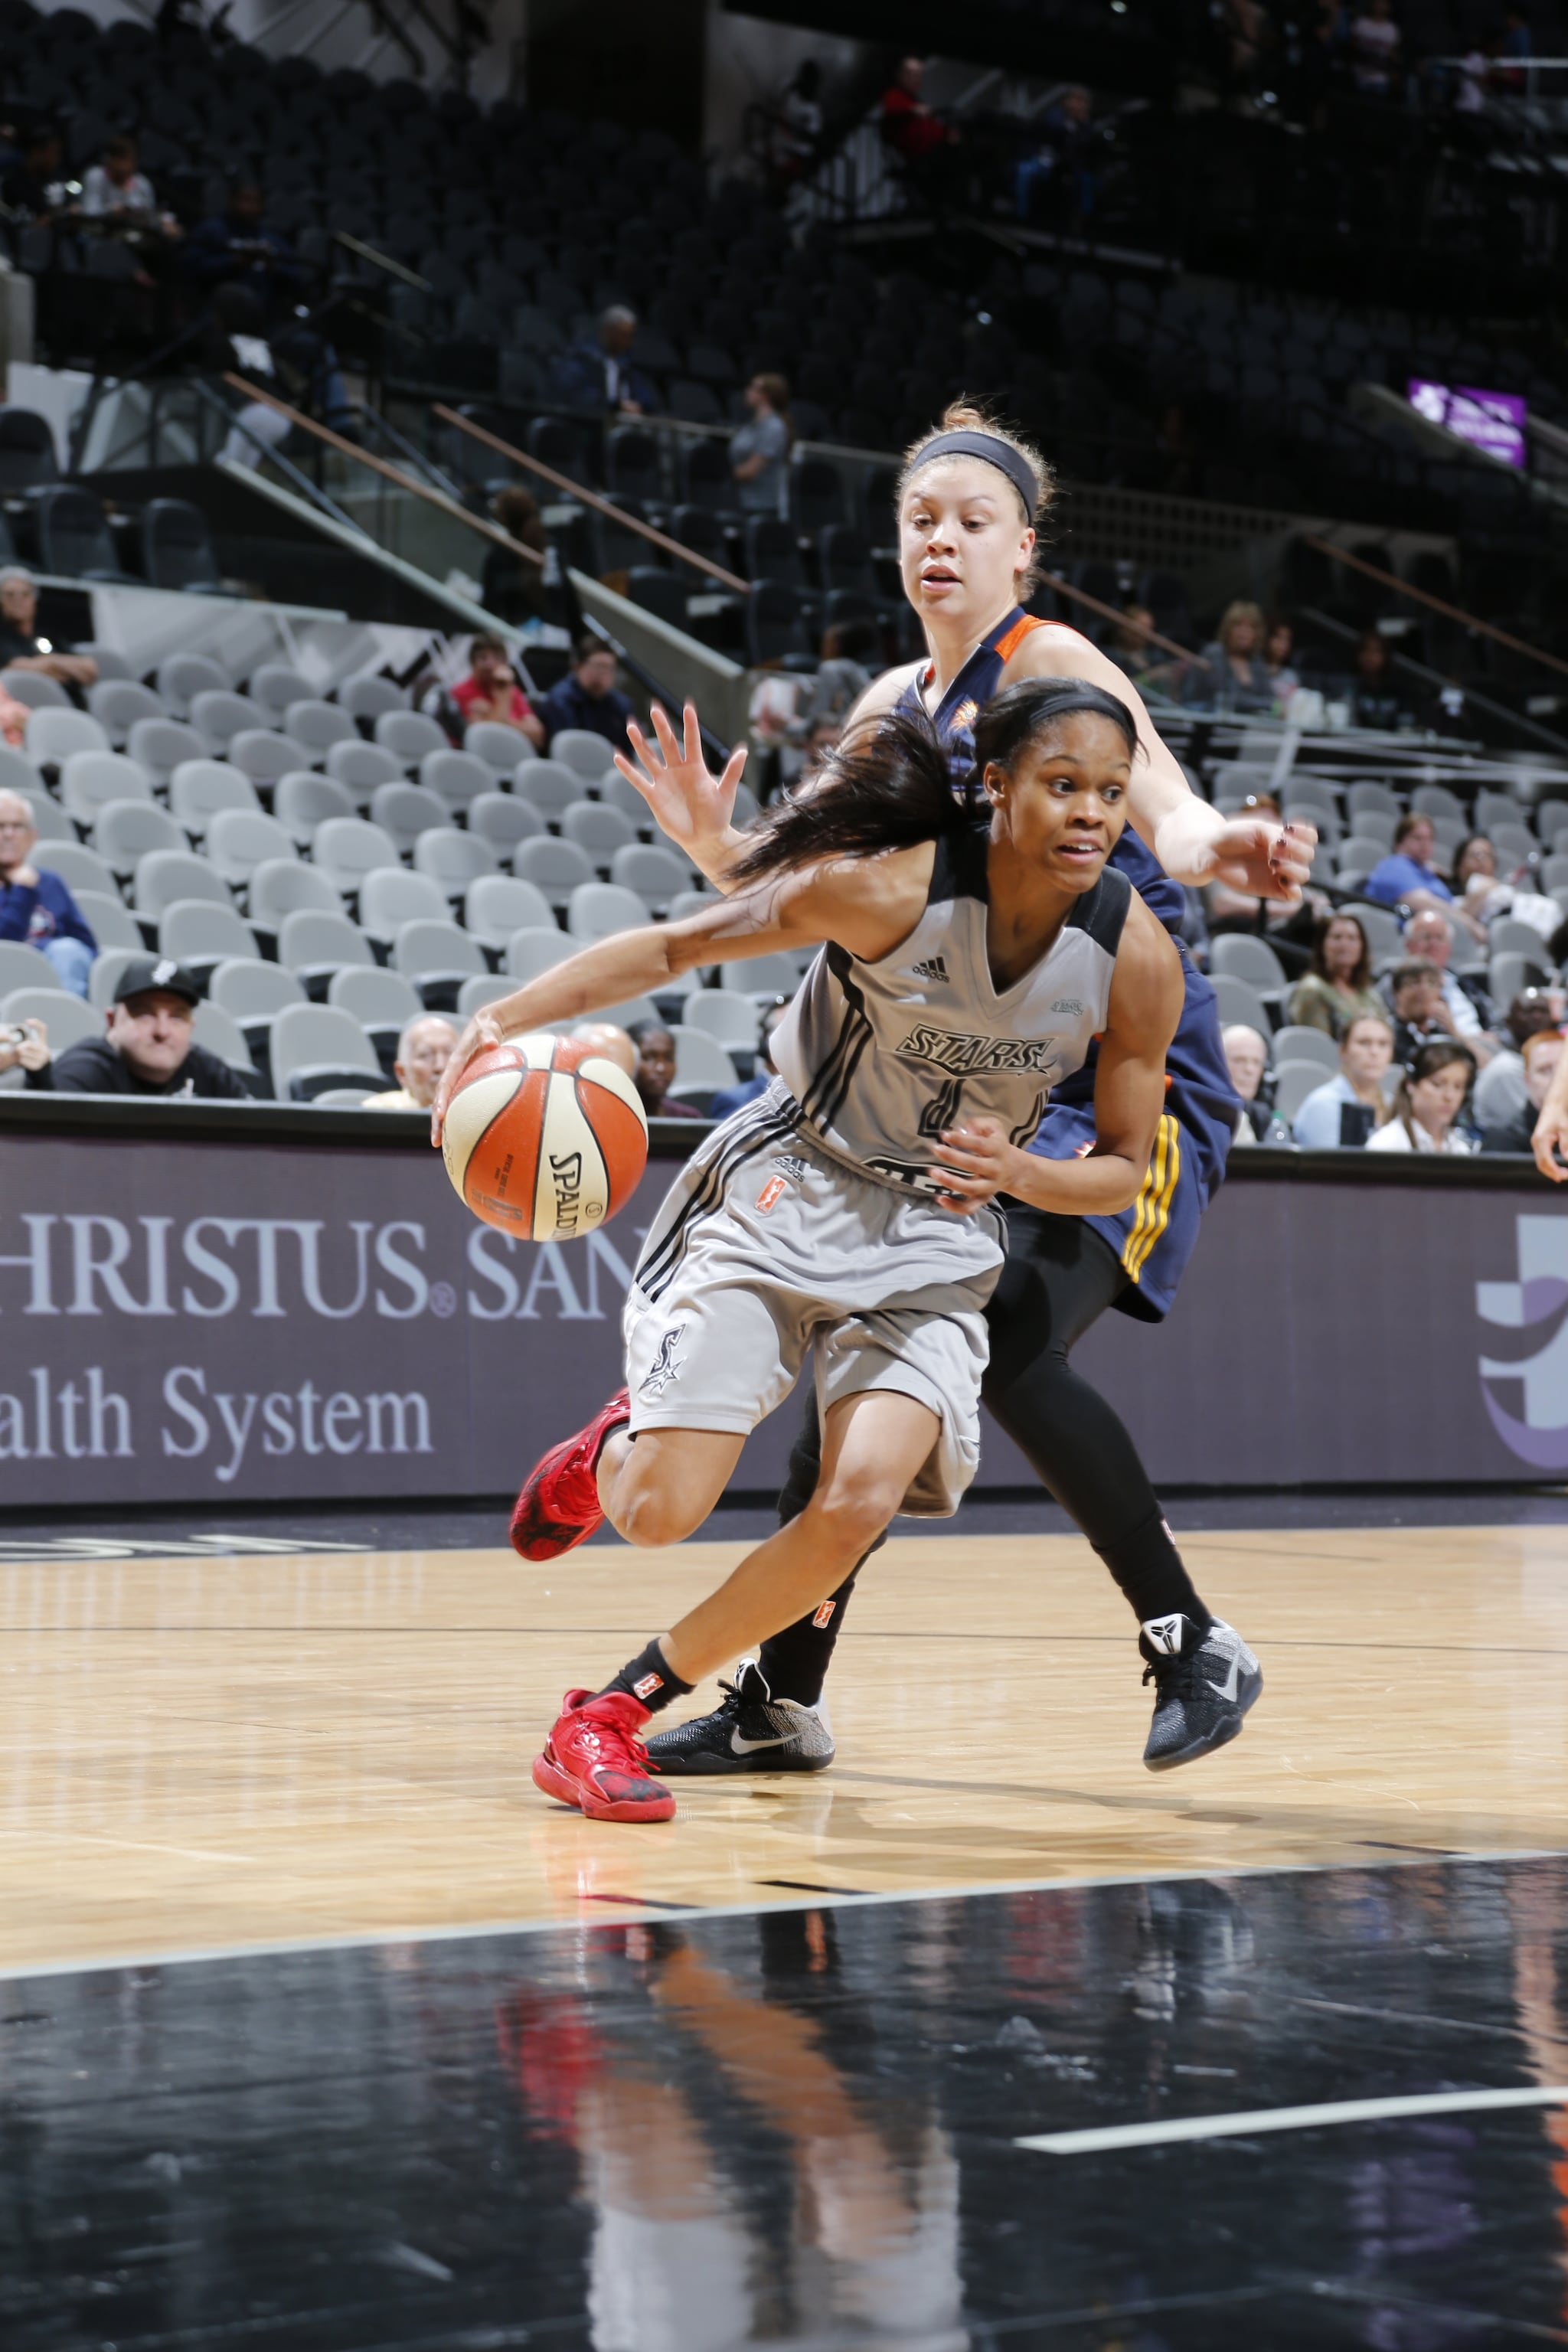 SAN ANTONIO, TX - MAY 19: Moriah Jefferson #4 of the San Antonio Stars drives to the basket against the Connecticut Sun on May 19, 2016 at AT&T Center in San Antonio, Texas. NOTE TO USER: User expressly acknowledges and agrees that, by downloading and or using this Photograph, user is consenting to the terms and conditions of the Getty Images License Agreement. Mandatory Copyright Notice: Copyright 2016 NBAE (Photo by Chris Covatta/NBAE via Getty Images)